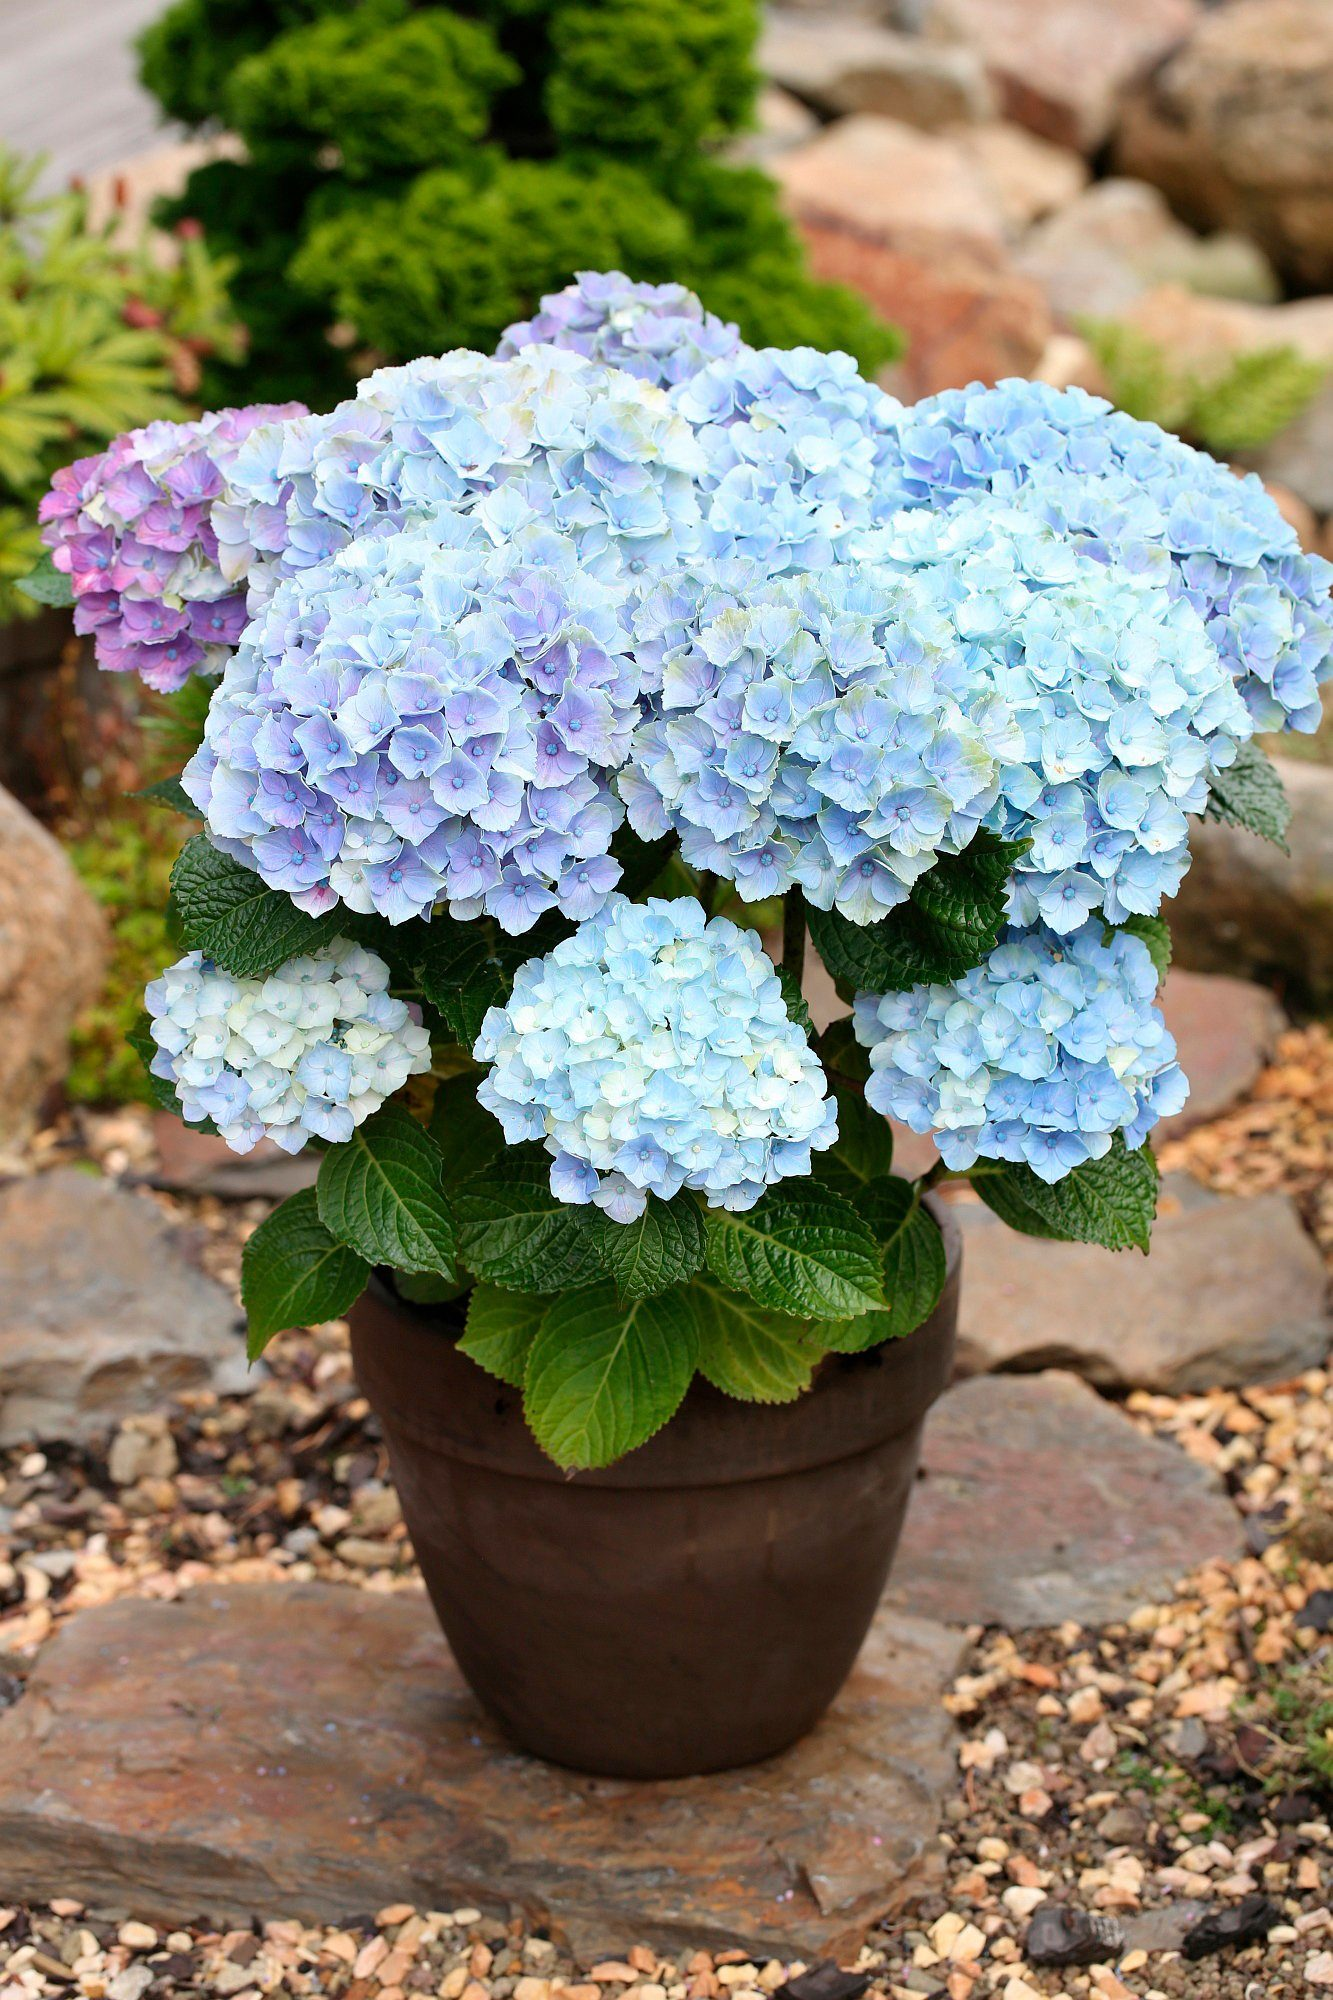 BCM Hortensie »Magical Amethyst Blue«, Höhe: 30-40 cm, 1 Pflanze